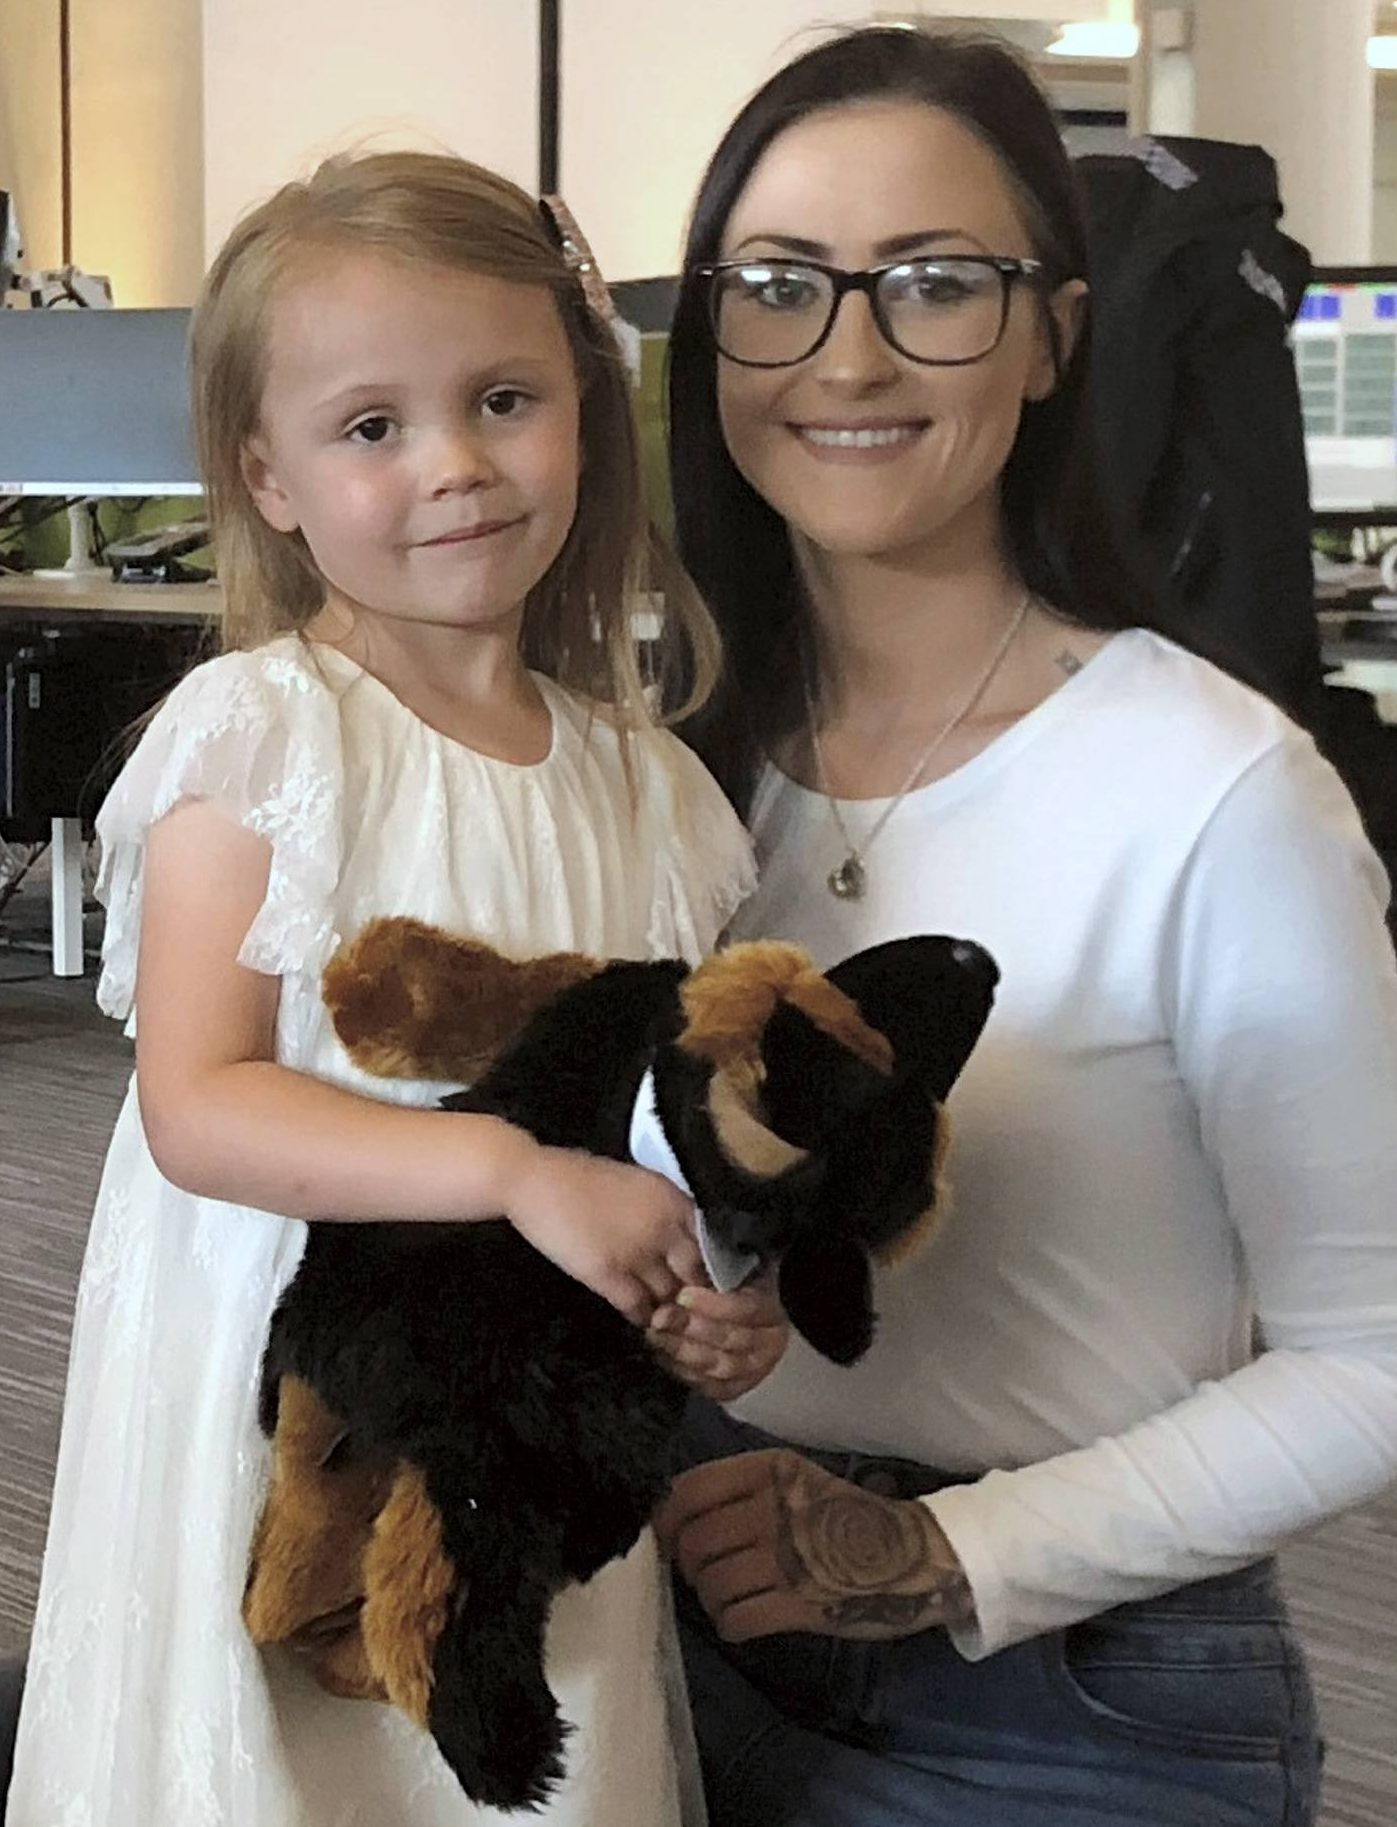 Dated: 10/08/2018 Hero four-year-old Mila Dobby, who saved her unconscious mum's life when she dialled 999 as Ellen Oselton lay bleeding from a head wound after a fall in the family home in Consett, County Durham. Pictured with mum Ellen. See story and video by North News